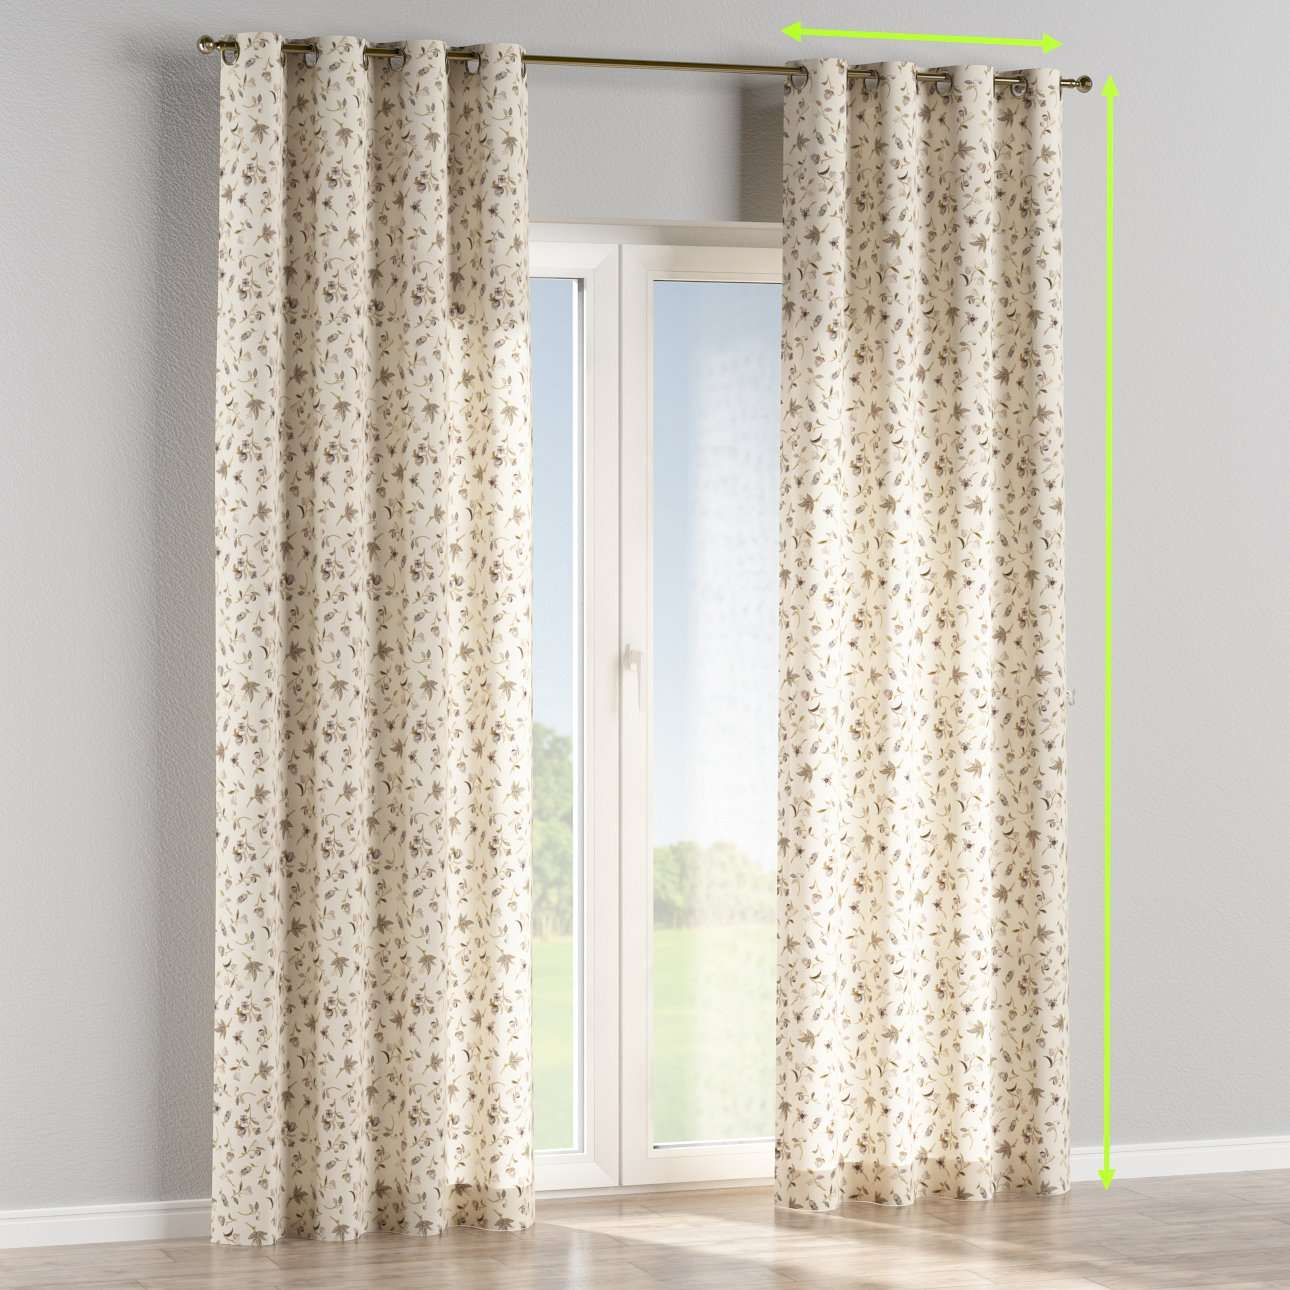 Eyelet lined curtains in collection Londres, fabric: 122-04